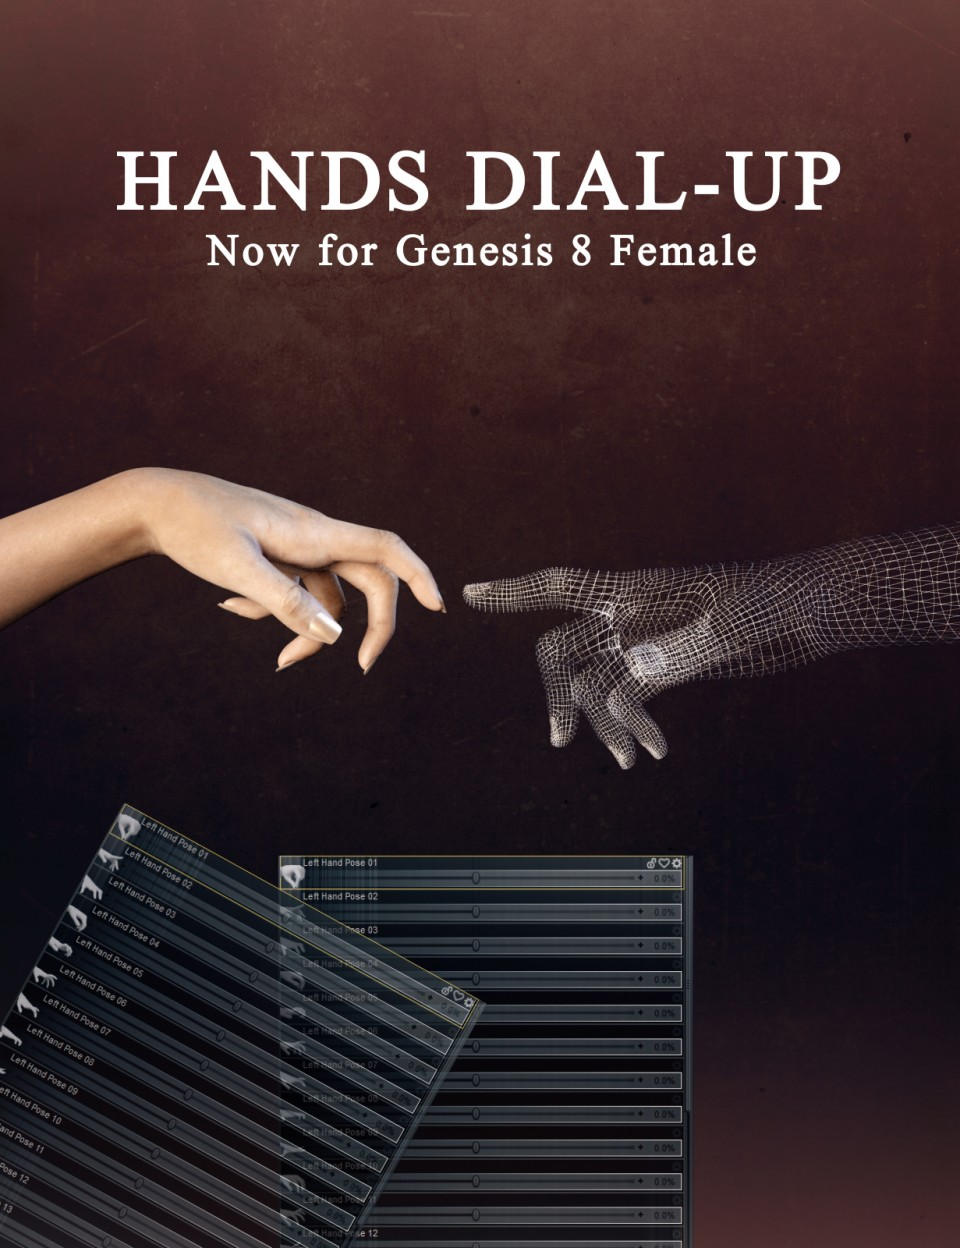 Hands Dial-up for Genesis 8 Female_DAZ3D下载站